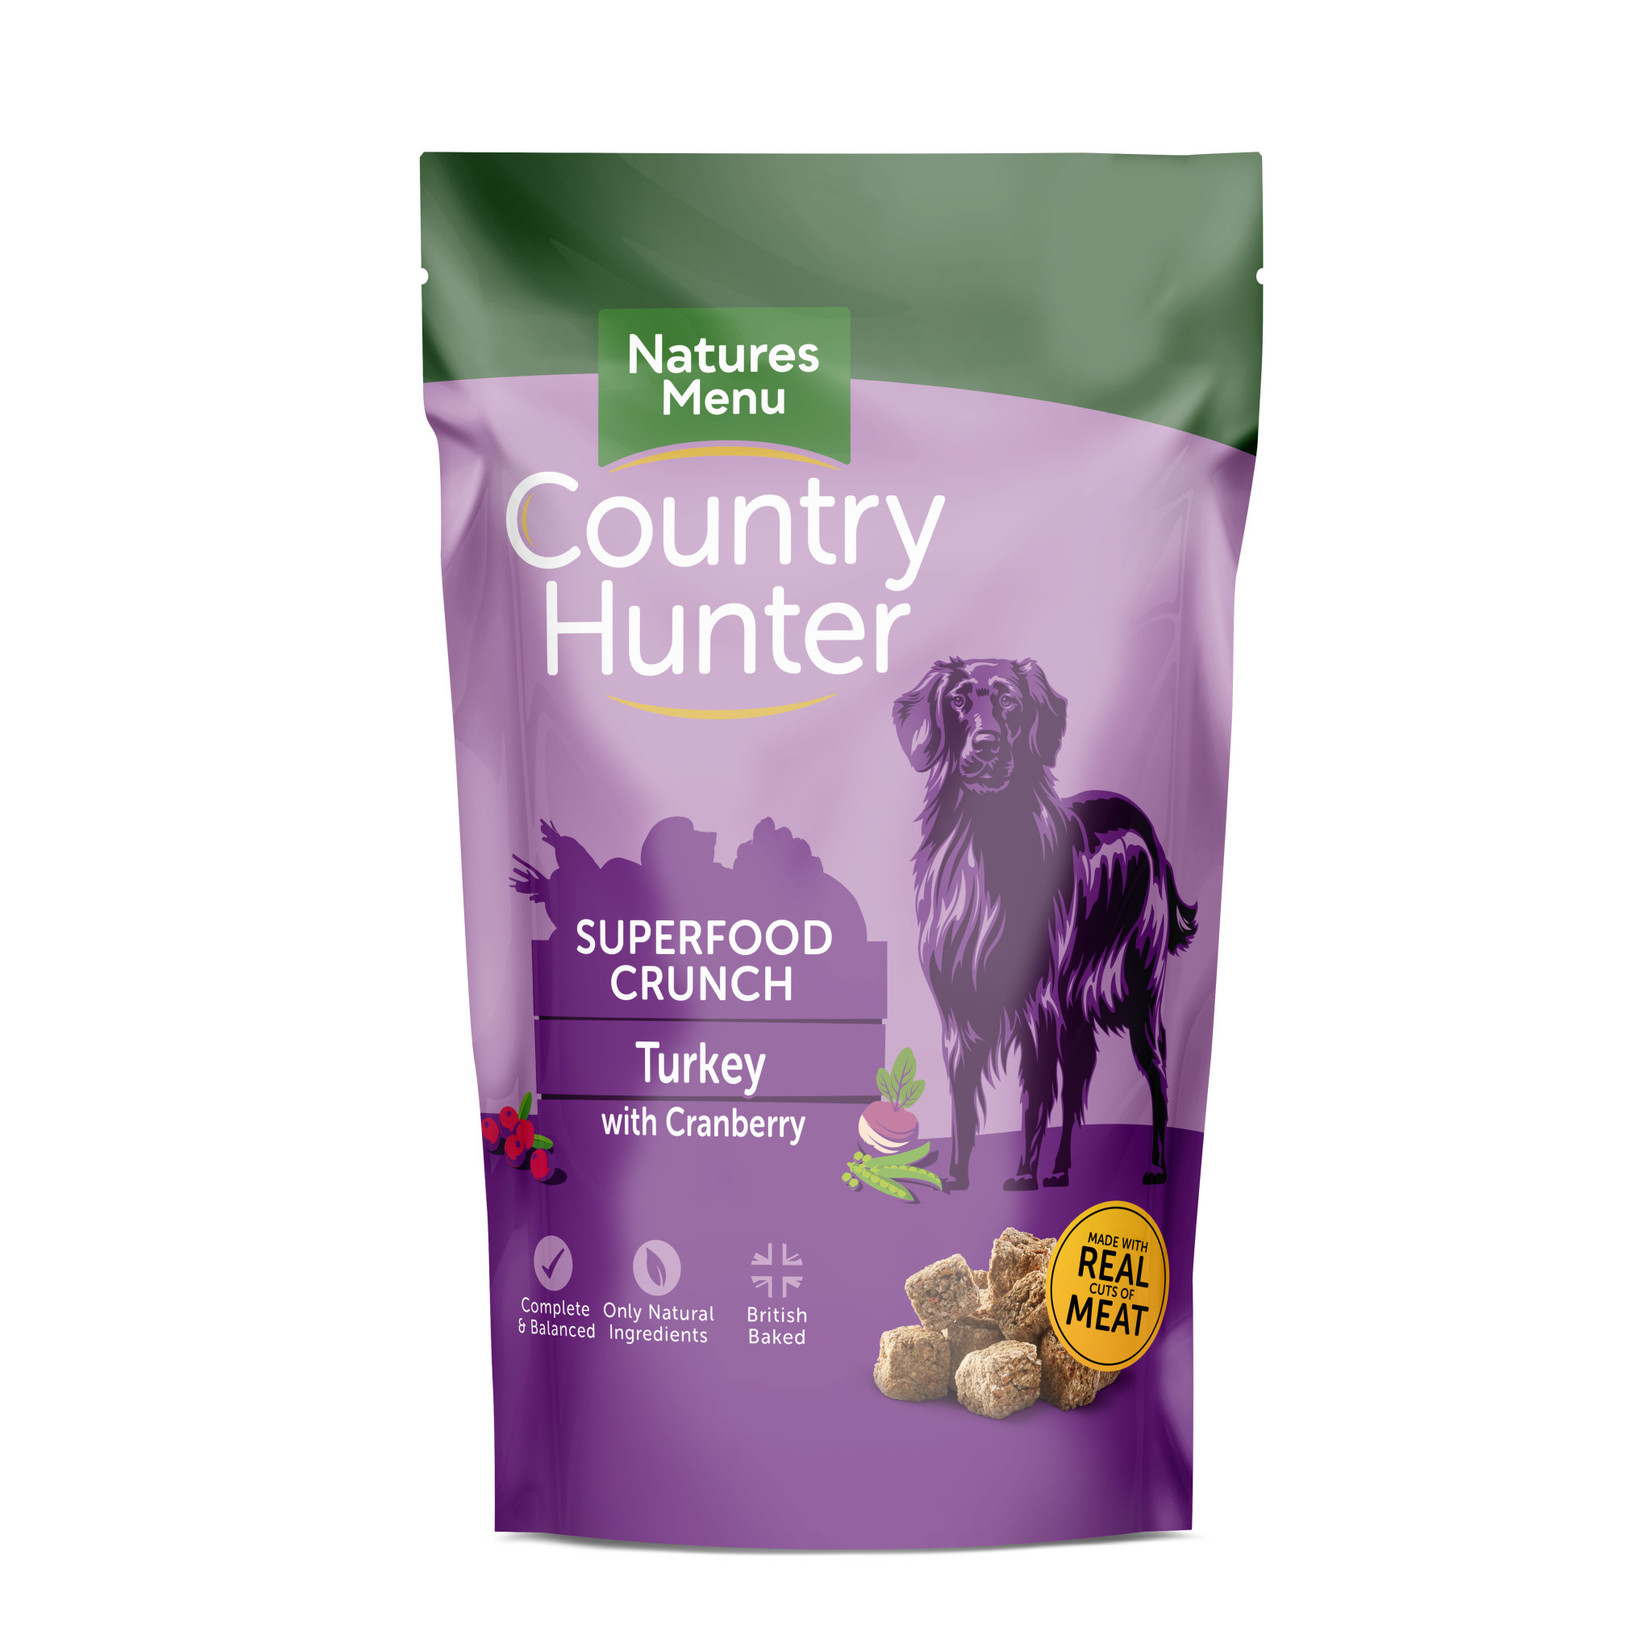 natures menu Country Hunter Superfood Crunch Adult Dog Dry Food Turkey with Cranberry, 1.2kg